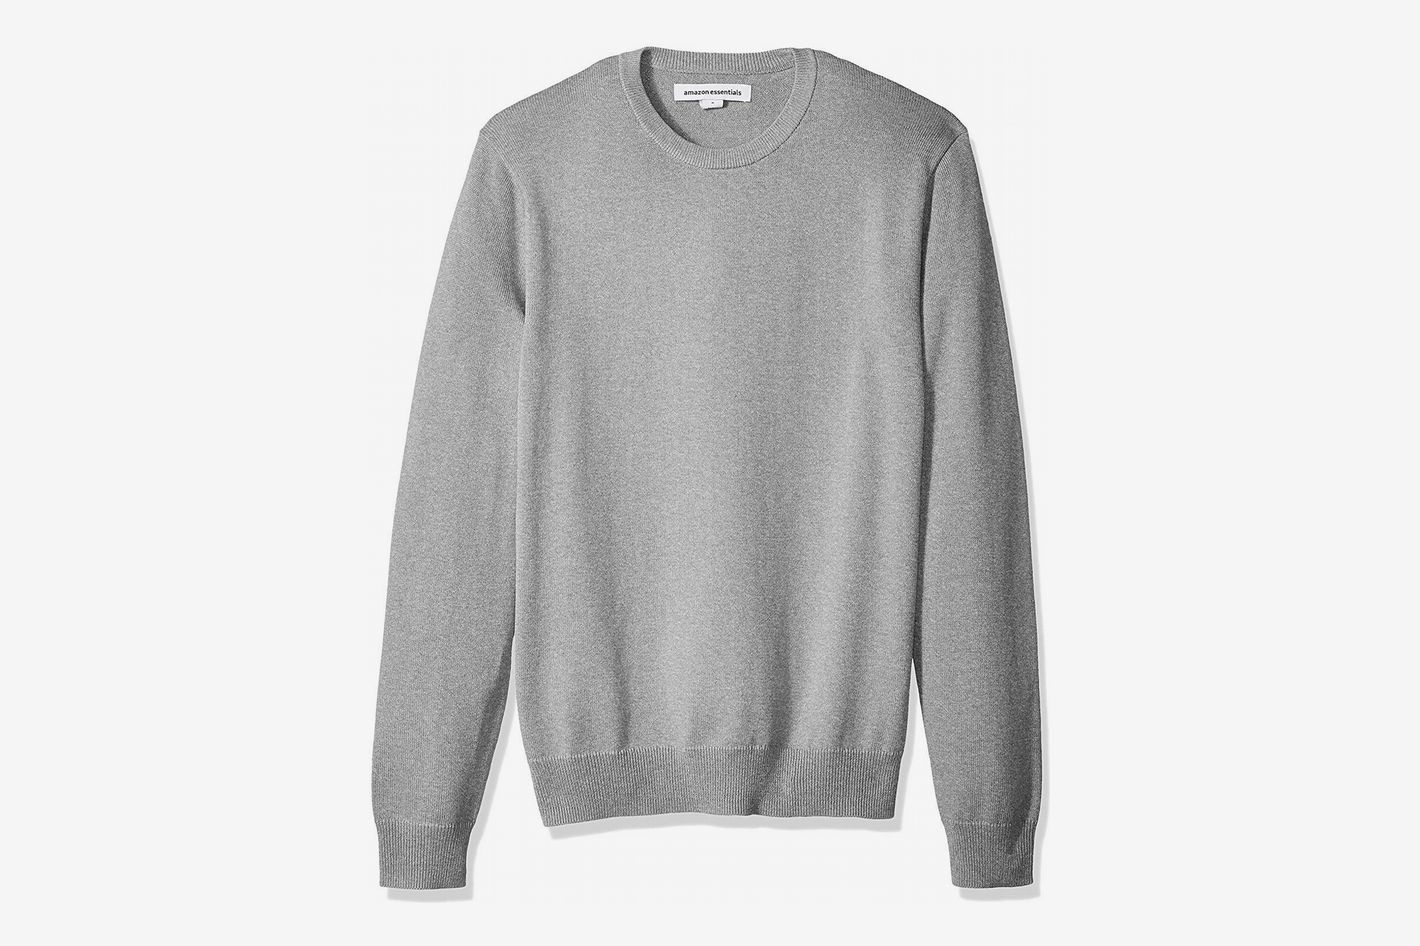 de2879581c3a 10 Best Crewneck Sweatshirts for Men 2018